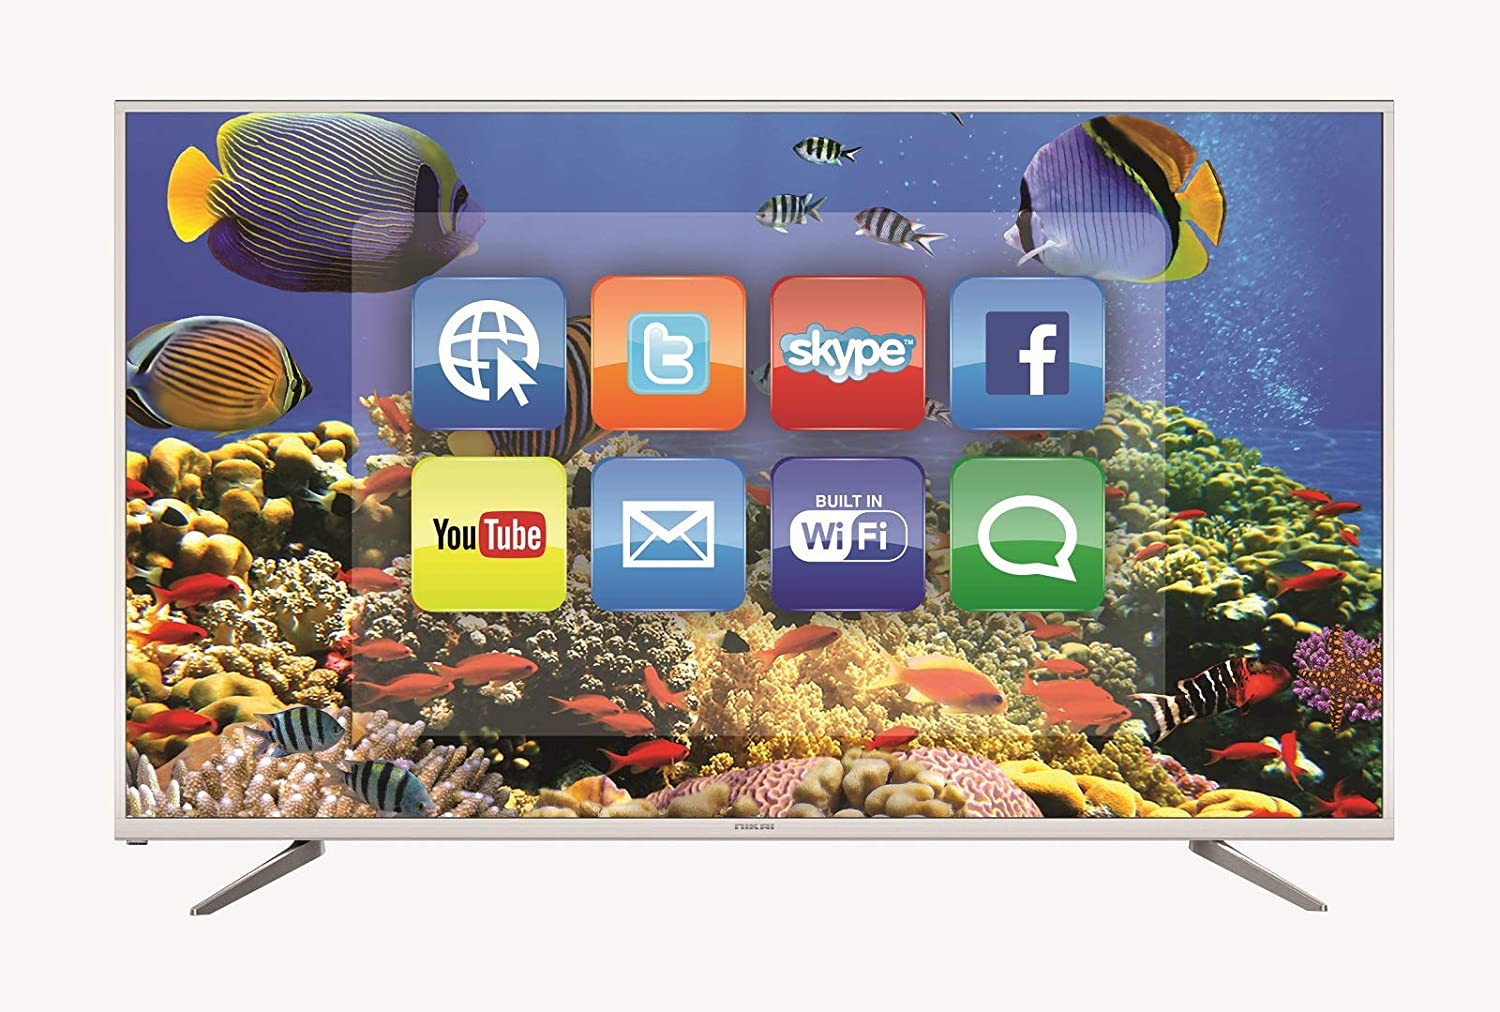 Nikai 55 Inch 4K UHD Android LED TV